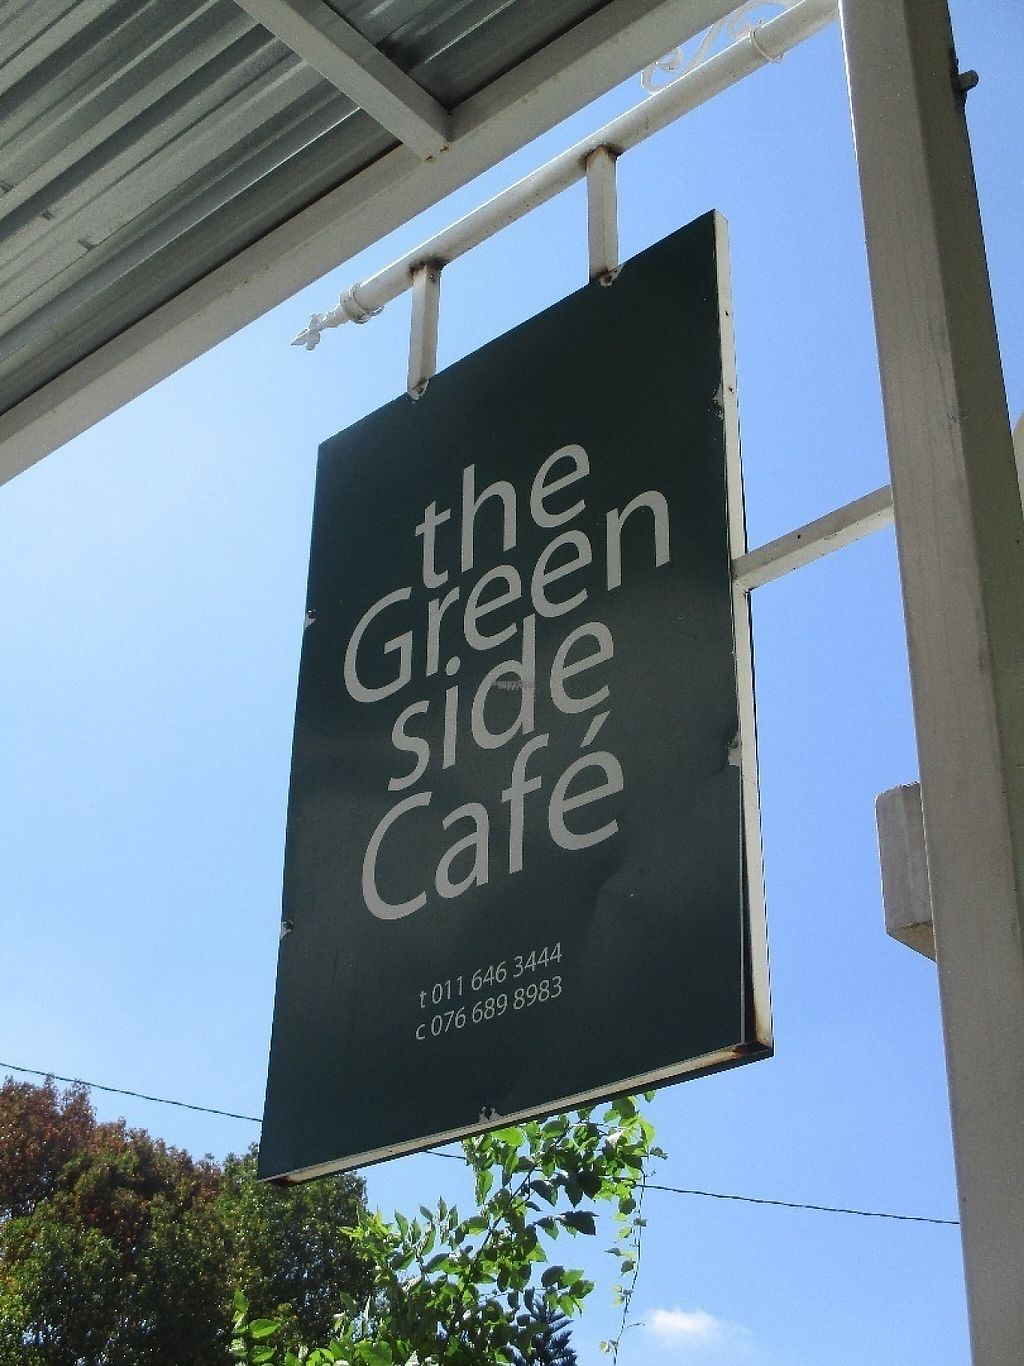 """Photo of The Greenside Cafe  by <a href=""""/members/profile/Wolfmoon"""">Wolfmoon</a> <br/>The Greenside Cafe - Situated in the most vegan-friendly area of Johannesburg <br/> April 16, 2017  - <a href='/contact/abuse/image/18707/248958'>Report</a>"""